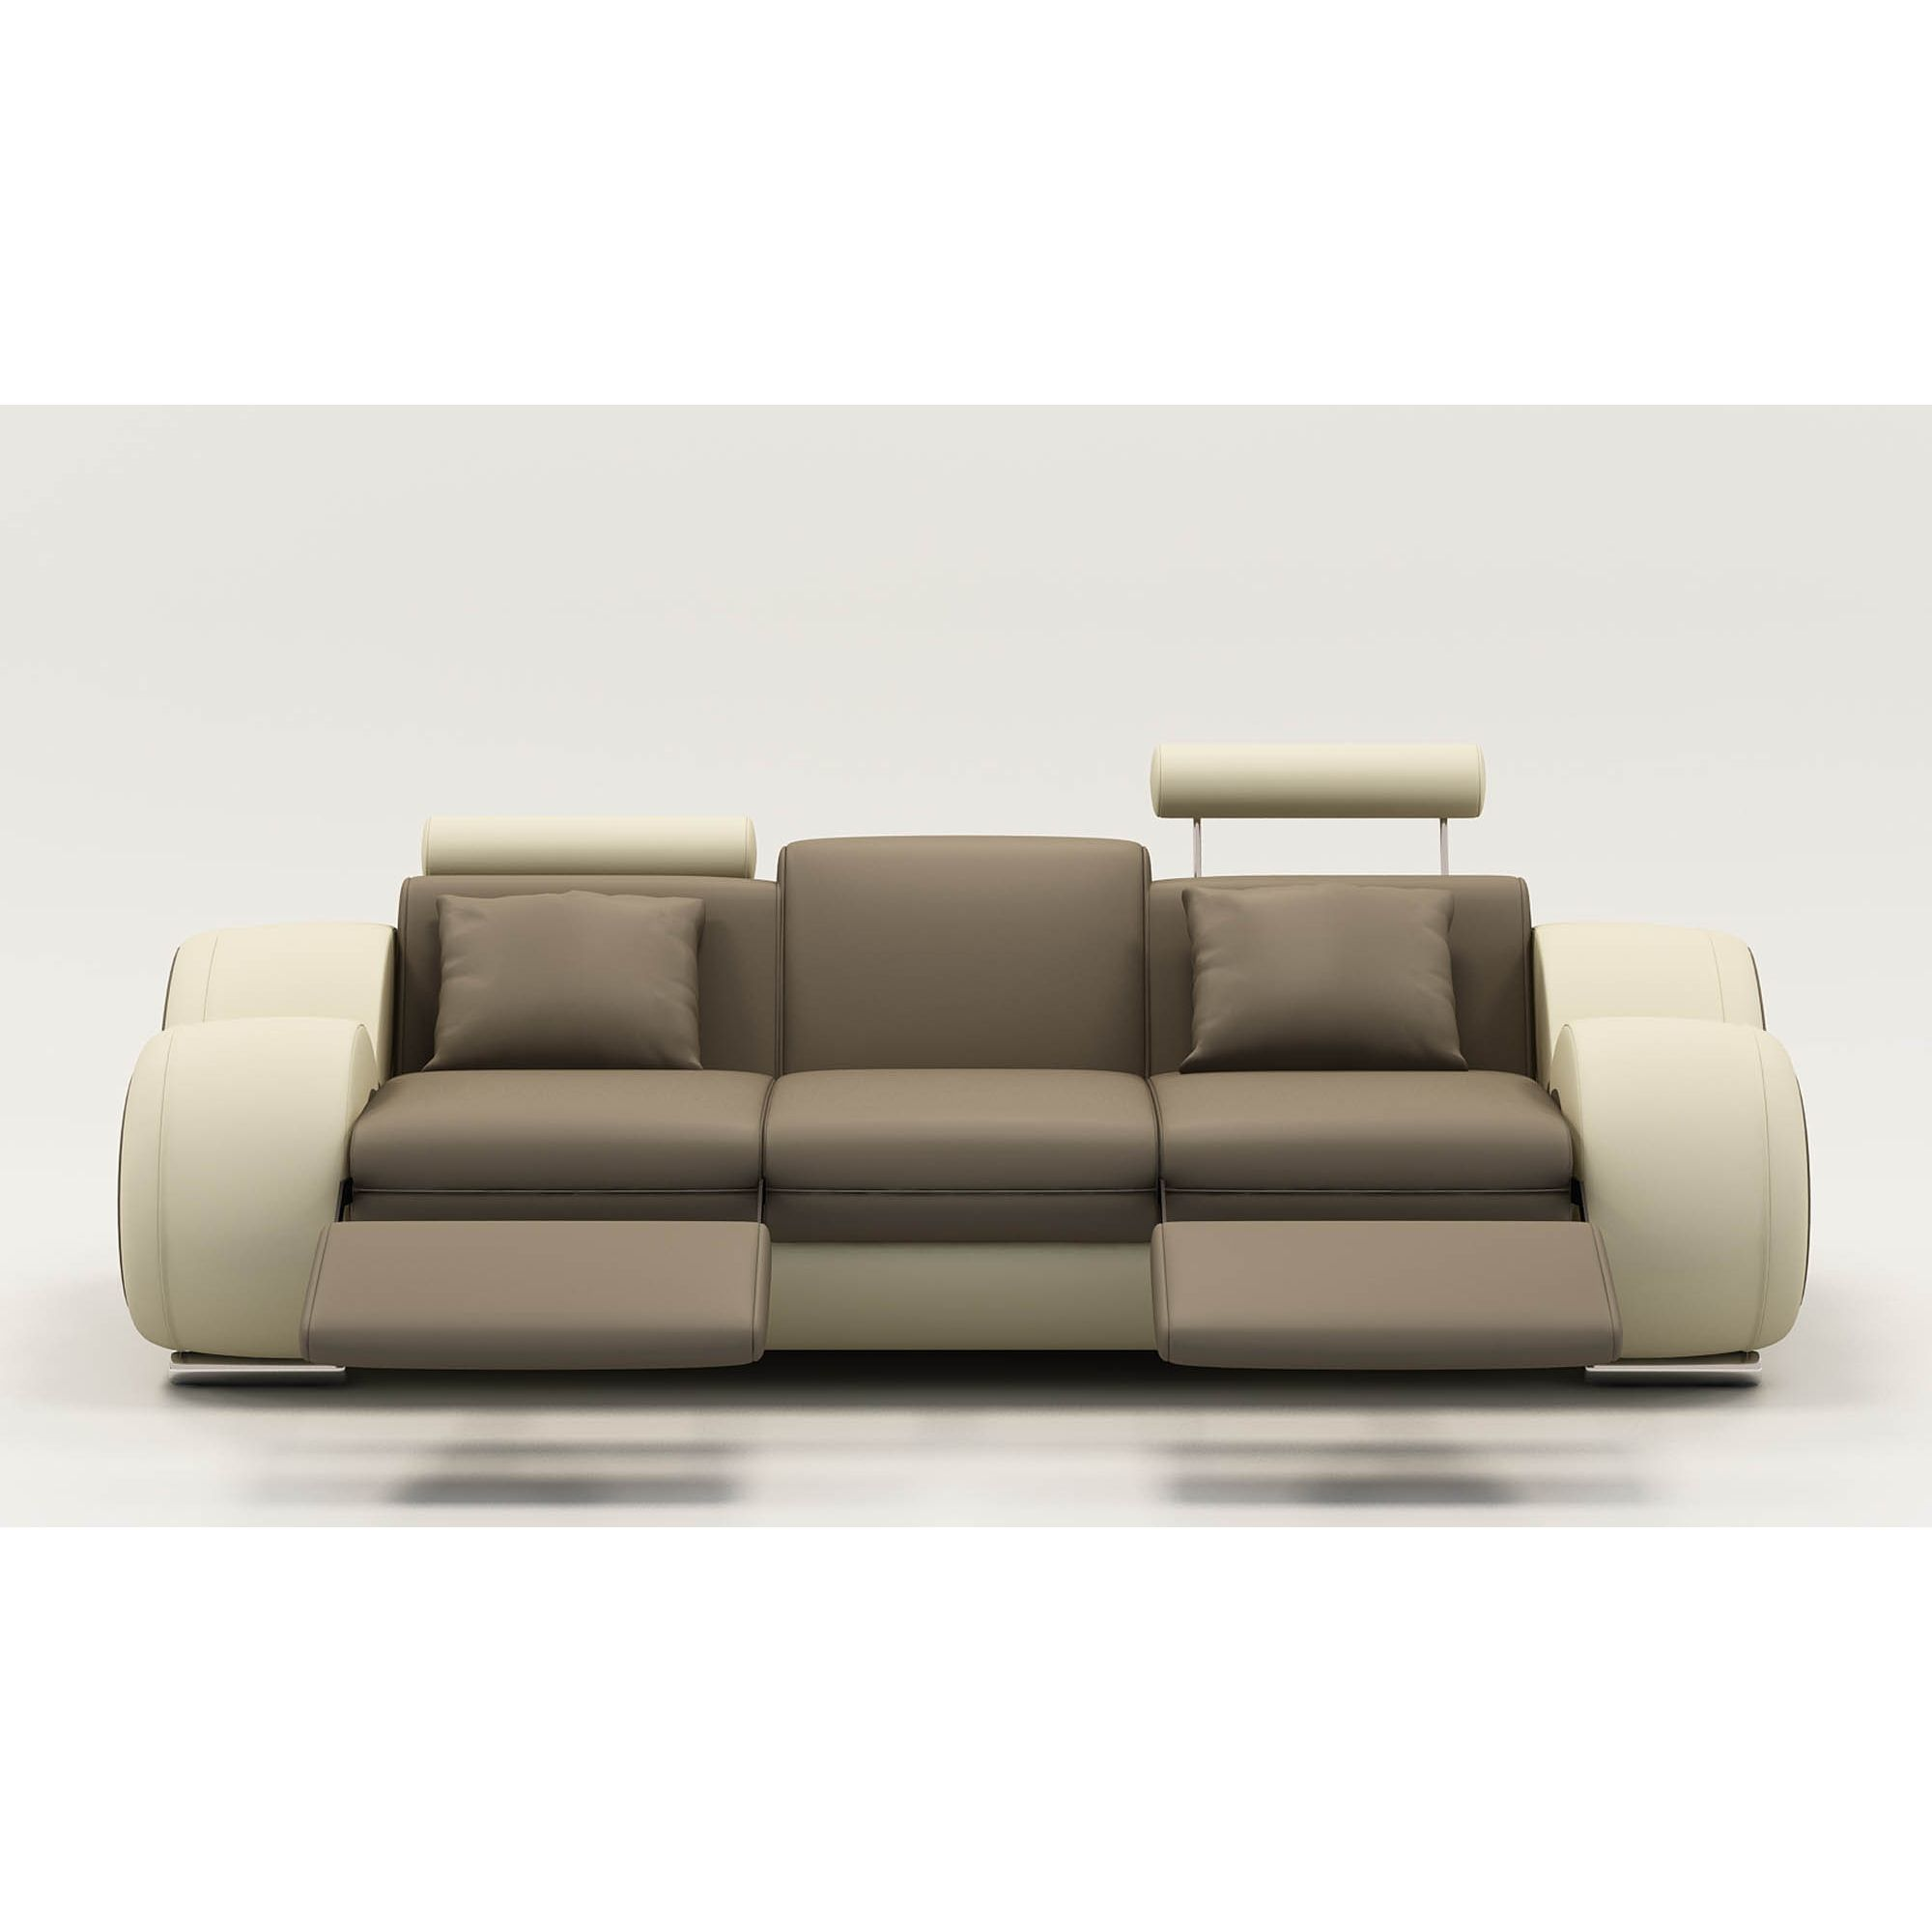 Deco in paris 0 canape design 3 places cuir marron et beige tetieres relax - Canape design 3 places ...